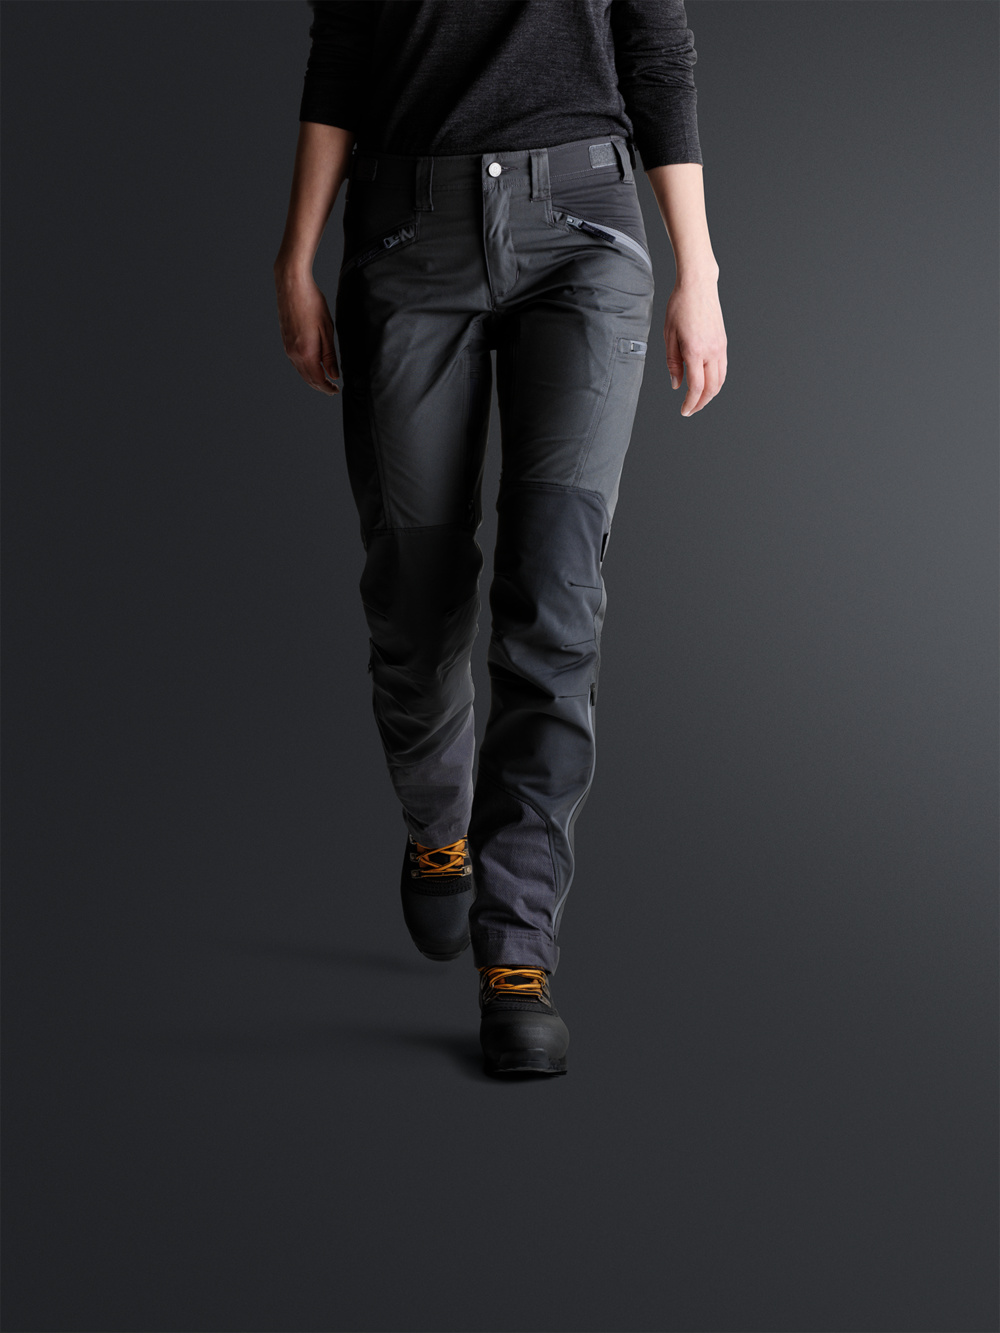 Lundhags Trousers.png